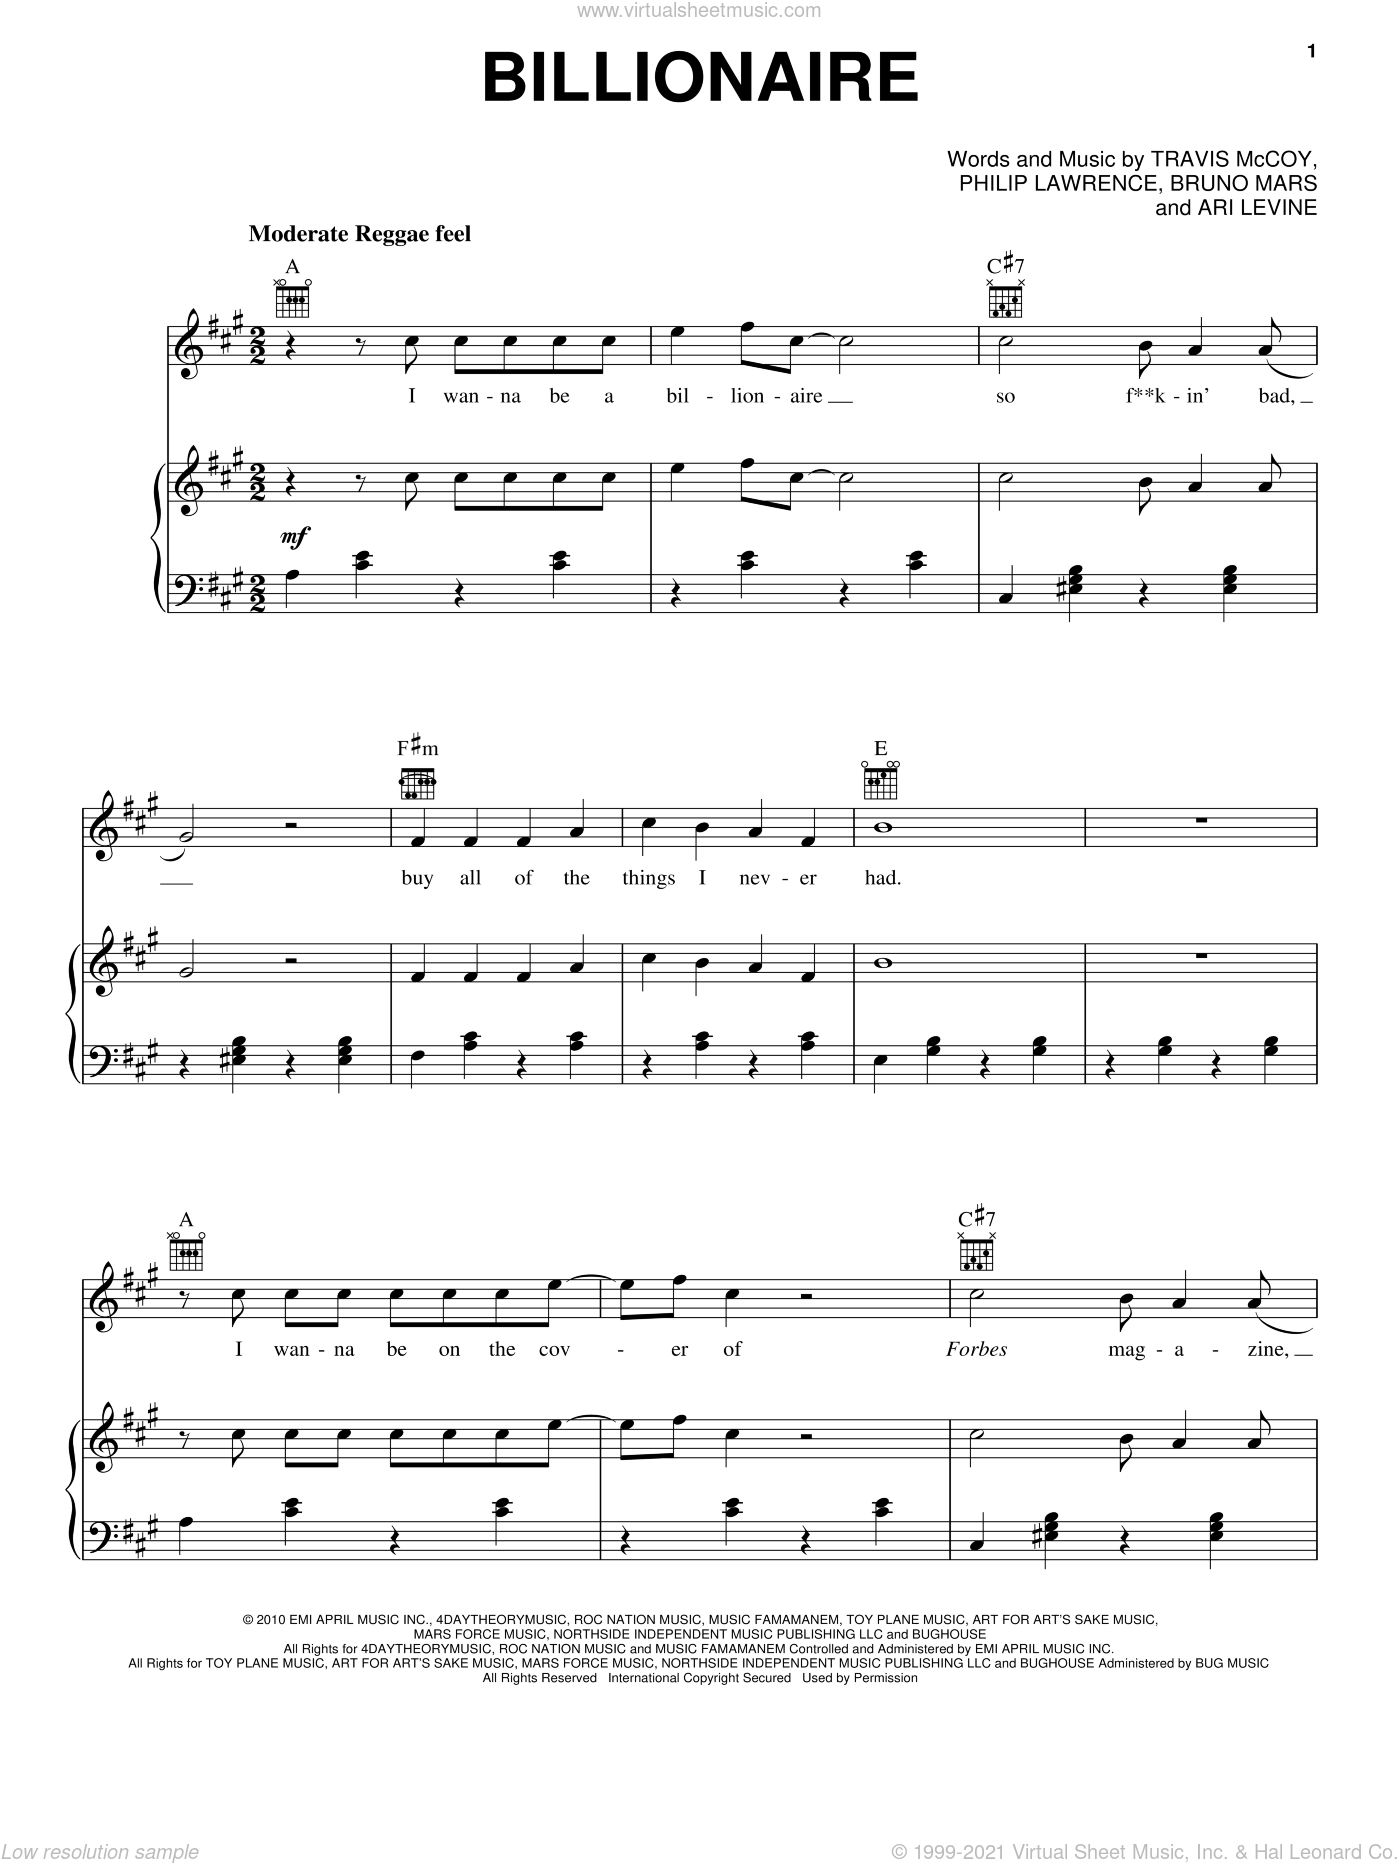 Billionaire sheet music for voice, piano or guitar by Philip Lawrence